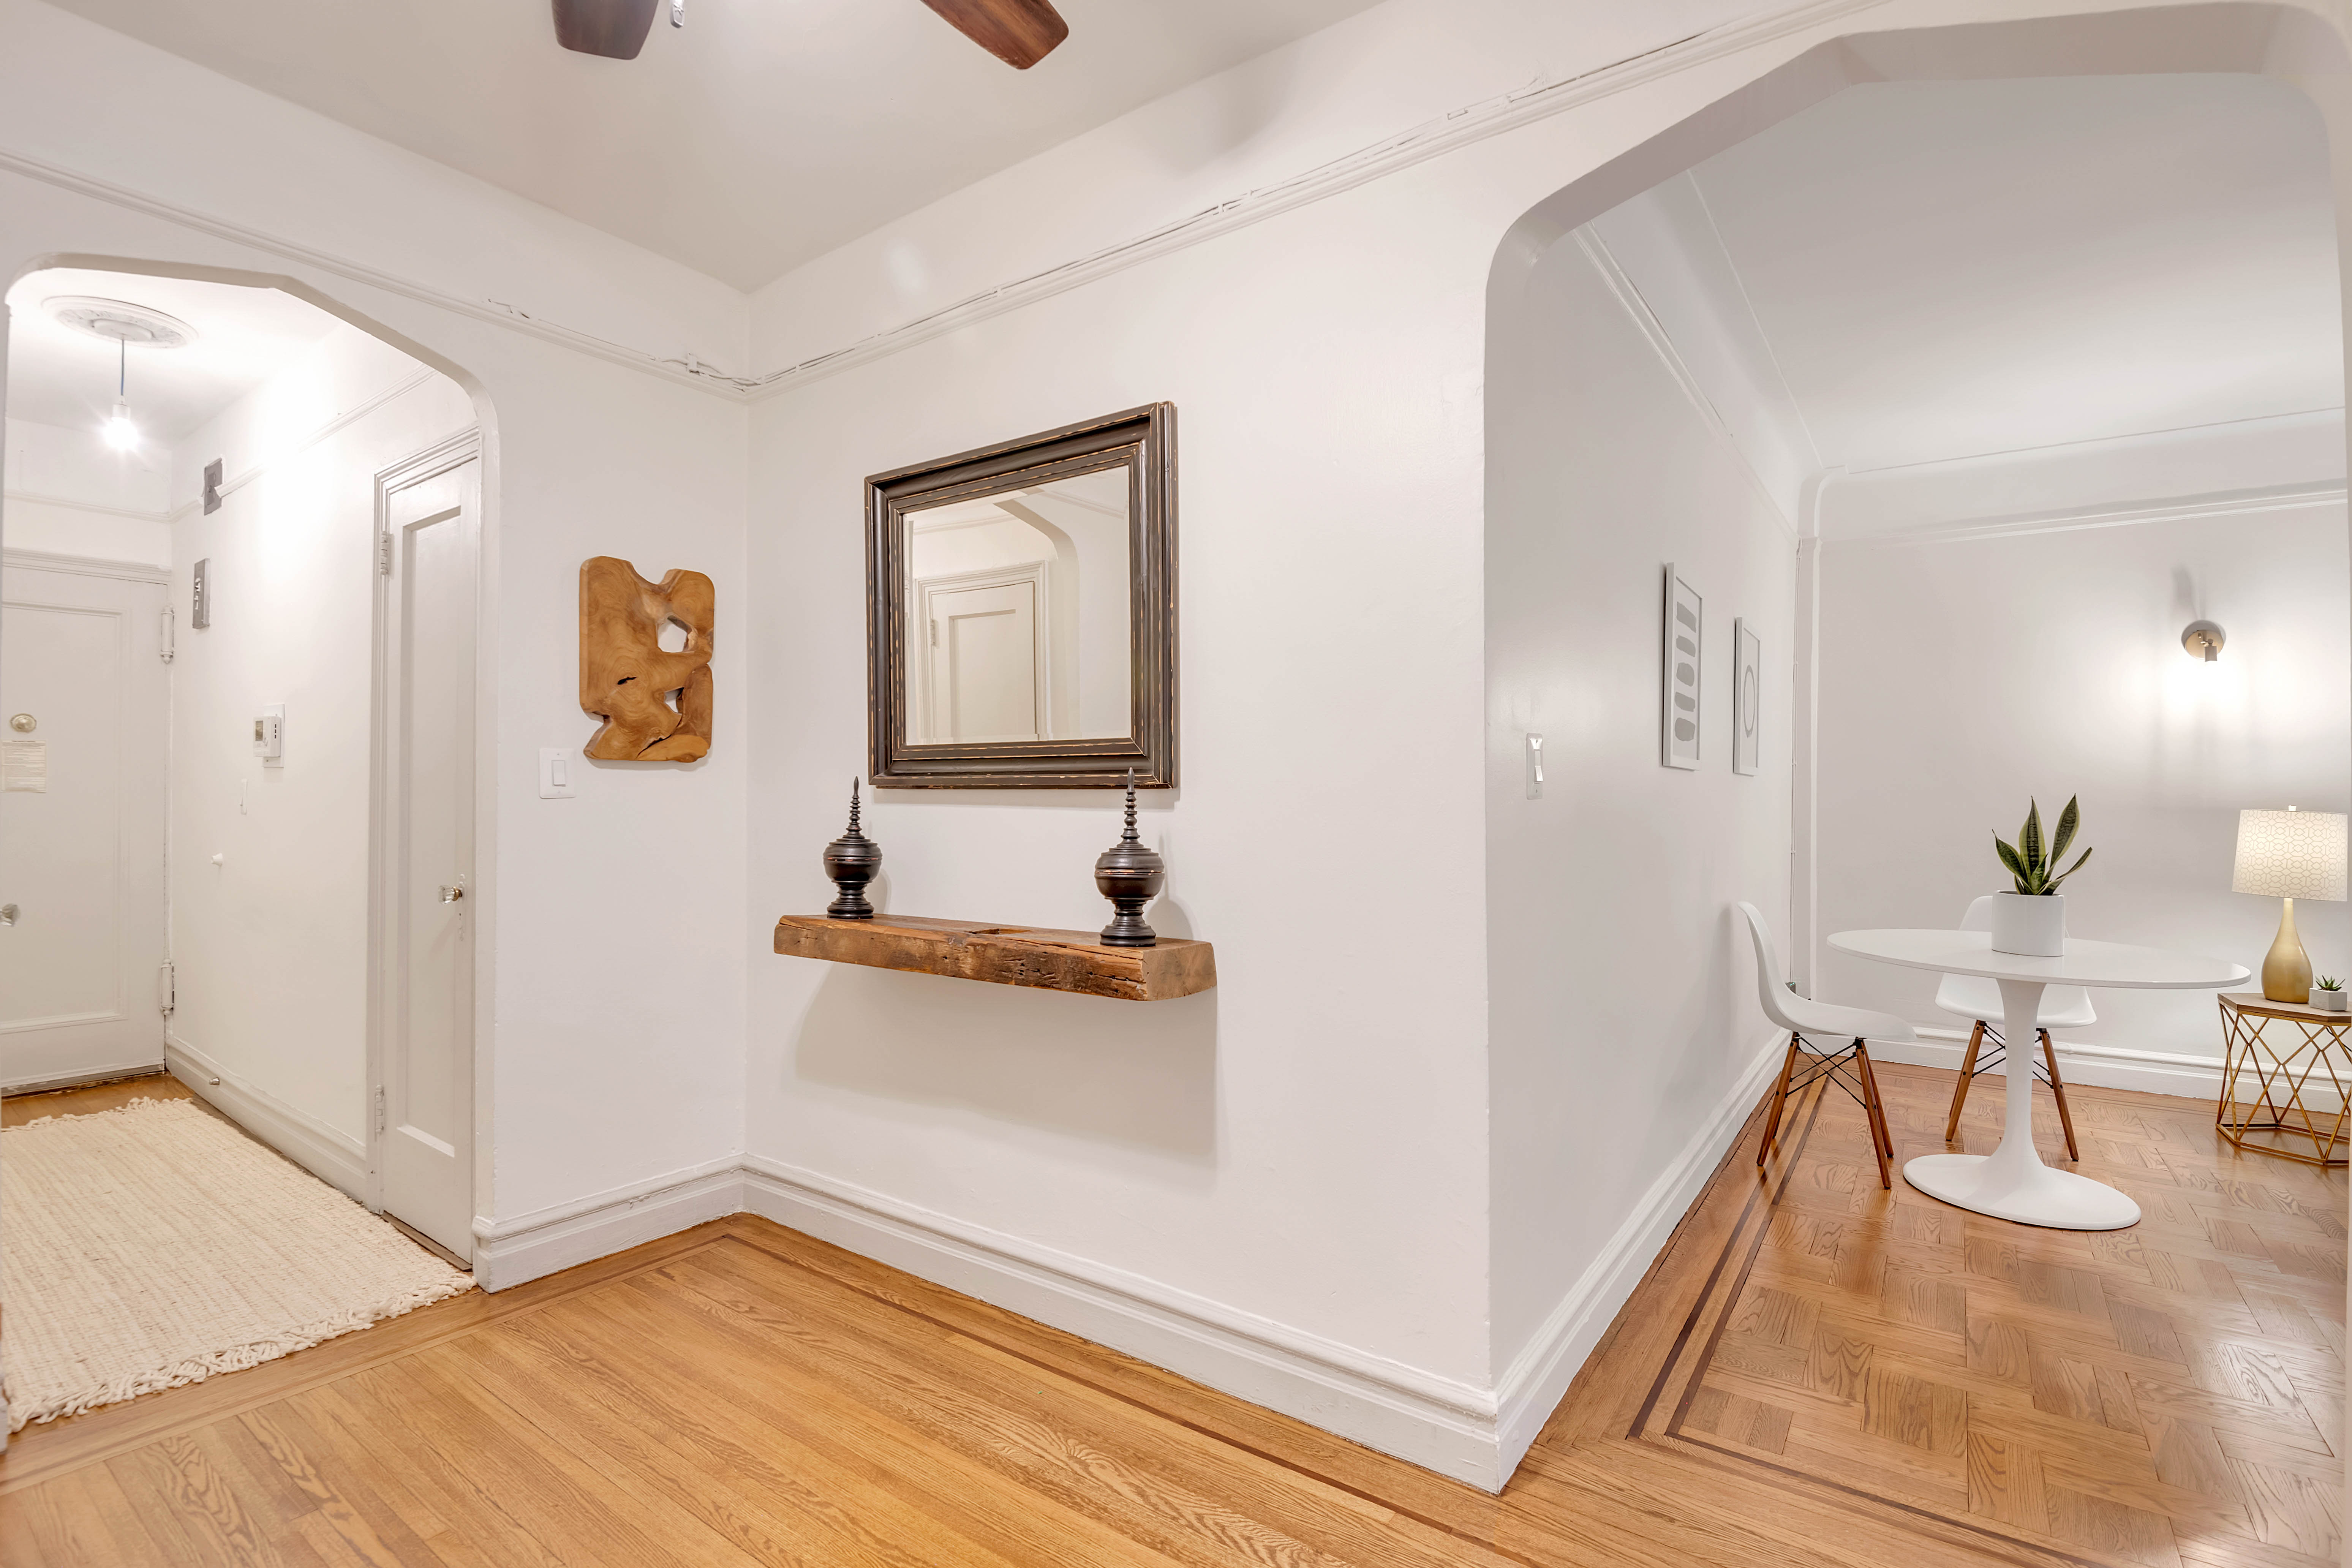 A foyer with arched entryways, hardwood floors, a mirror, and a ceiling fan.